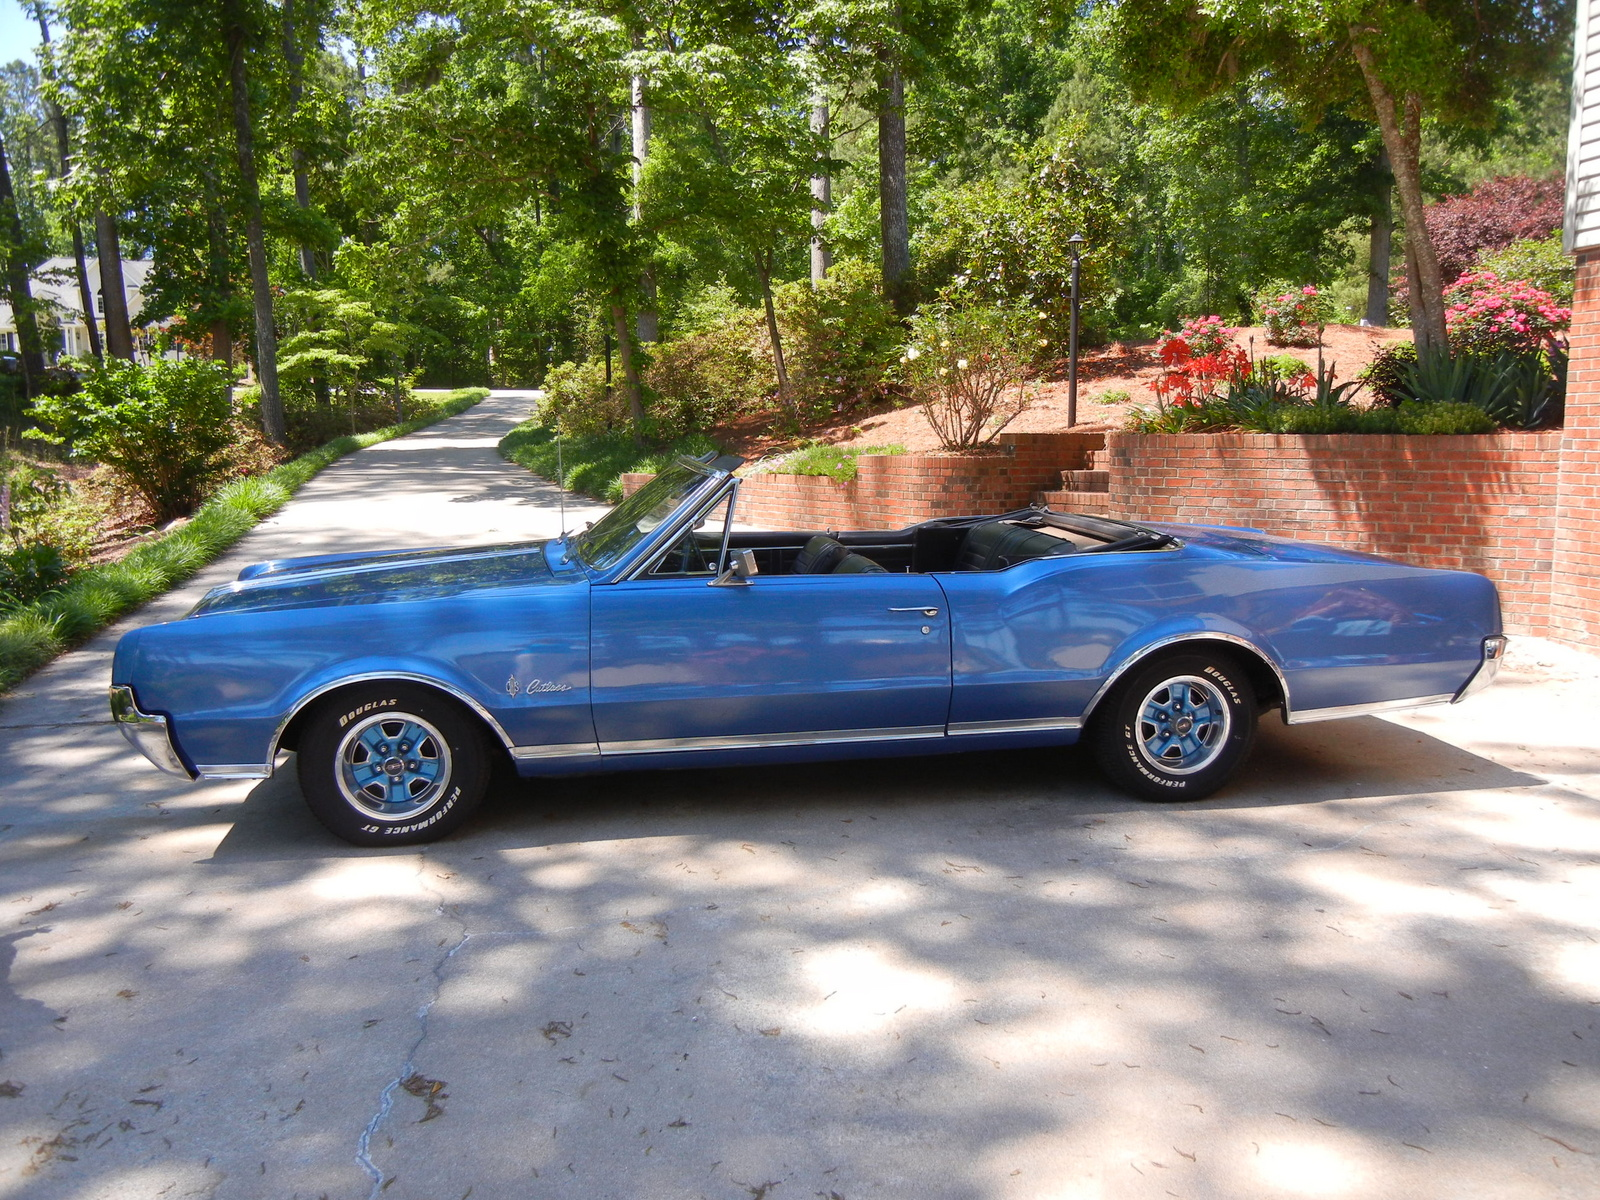 1976 Buick Skyhawk furthermore 1976 Oldsmobile Ni y Eight Overview C9025 as well 1969 Oldsmobile Toronado likewise 1967 Oldsmobile Cutlass Supreme Overview C8814 also Olds Cutlass S History Timeline. on 1977 oldsmobile starfire